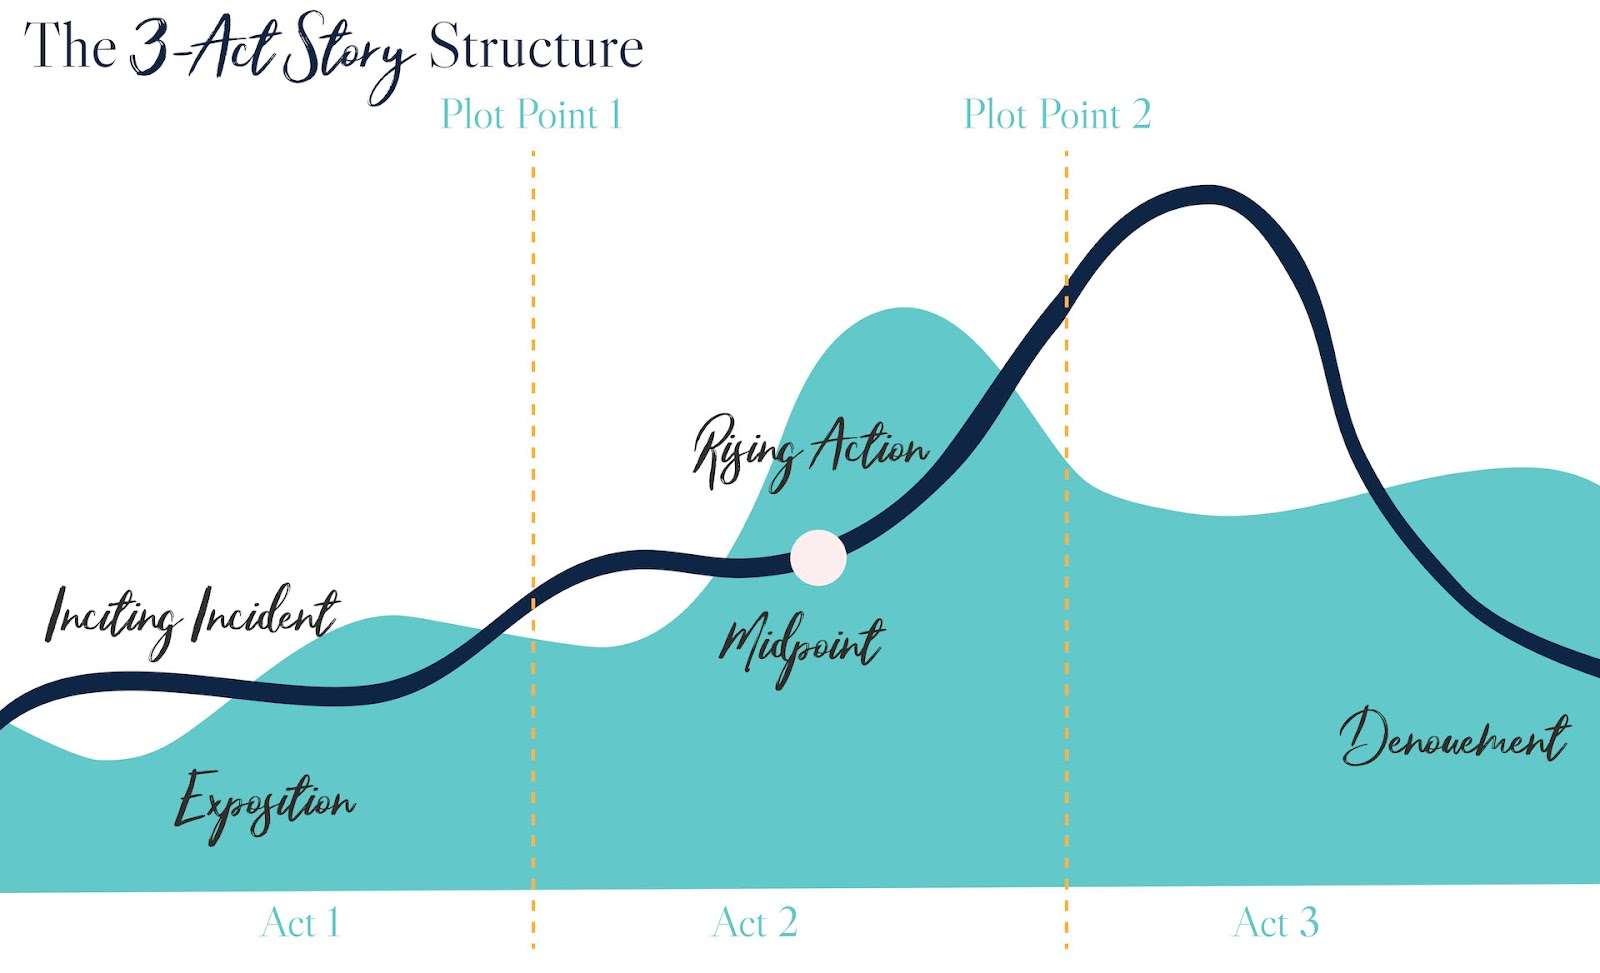 A roller coaster-like graph of the ups and downs in a 3-Act story plot structure.